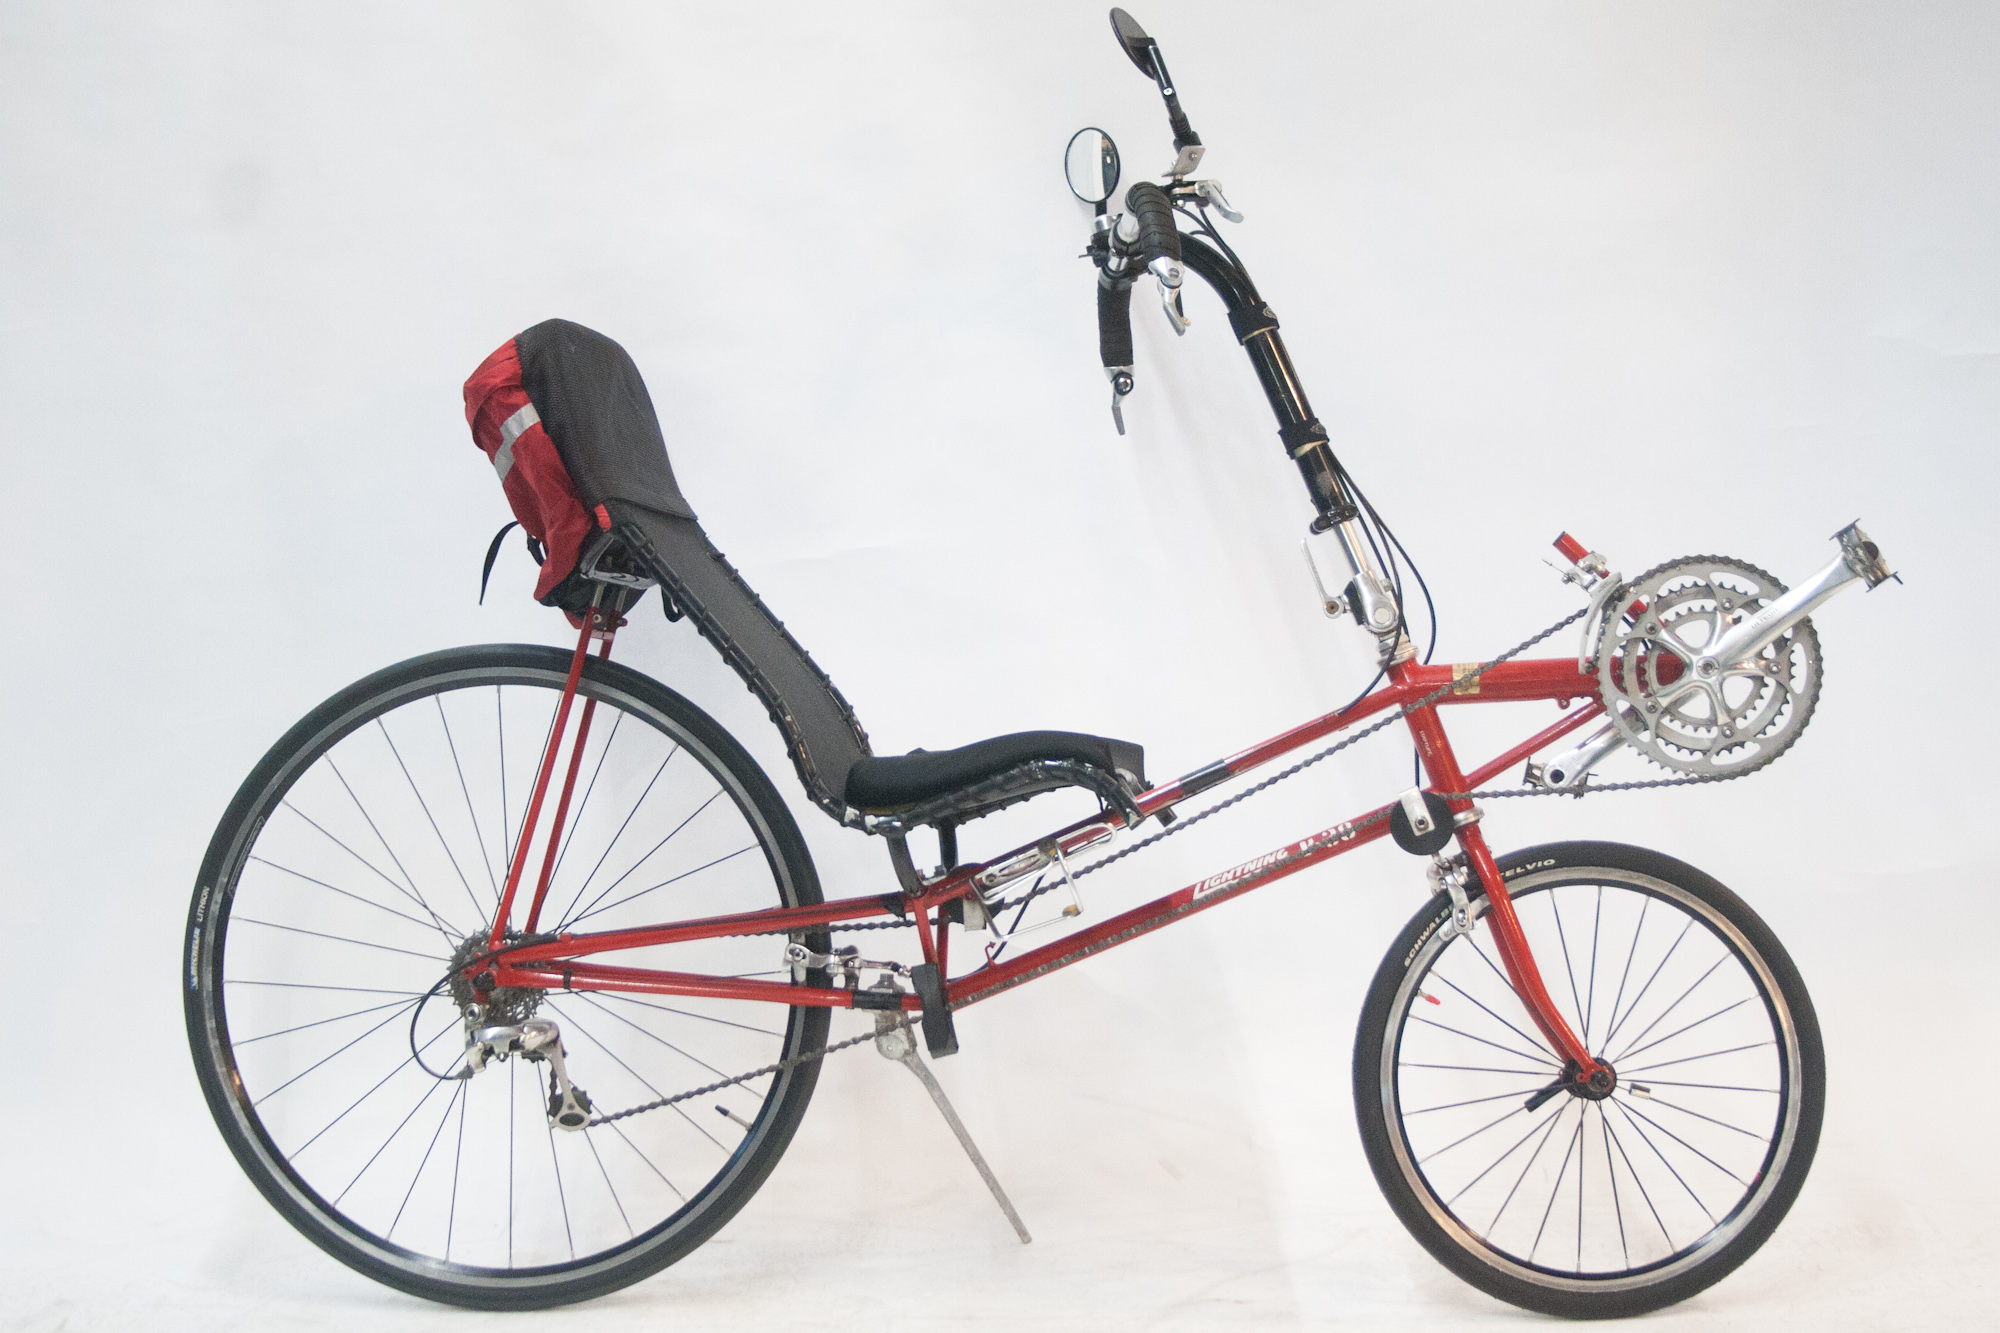 Red Lightning p-38 with a bag, mirror and kickstand